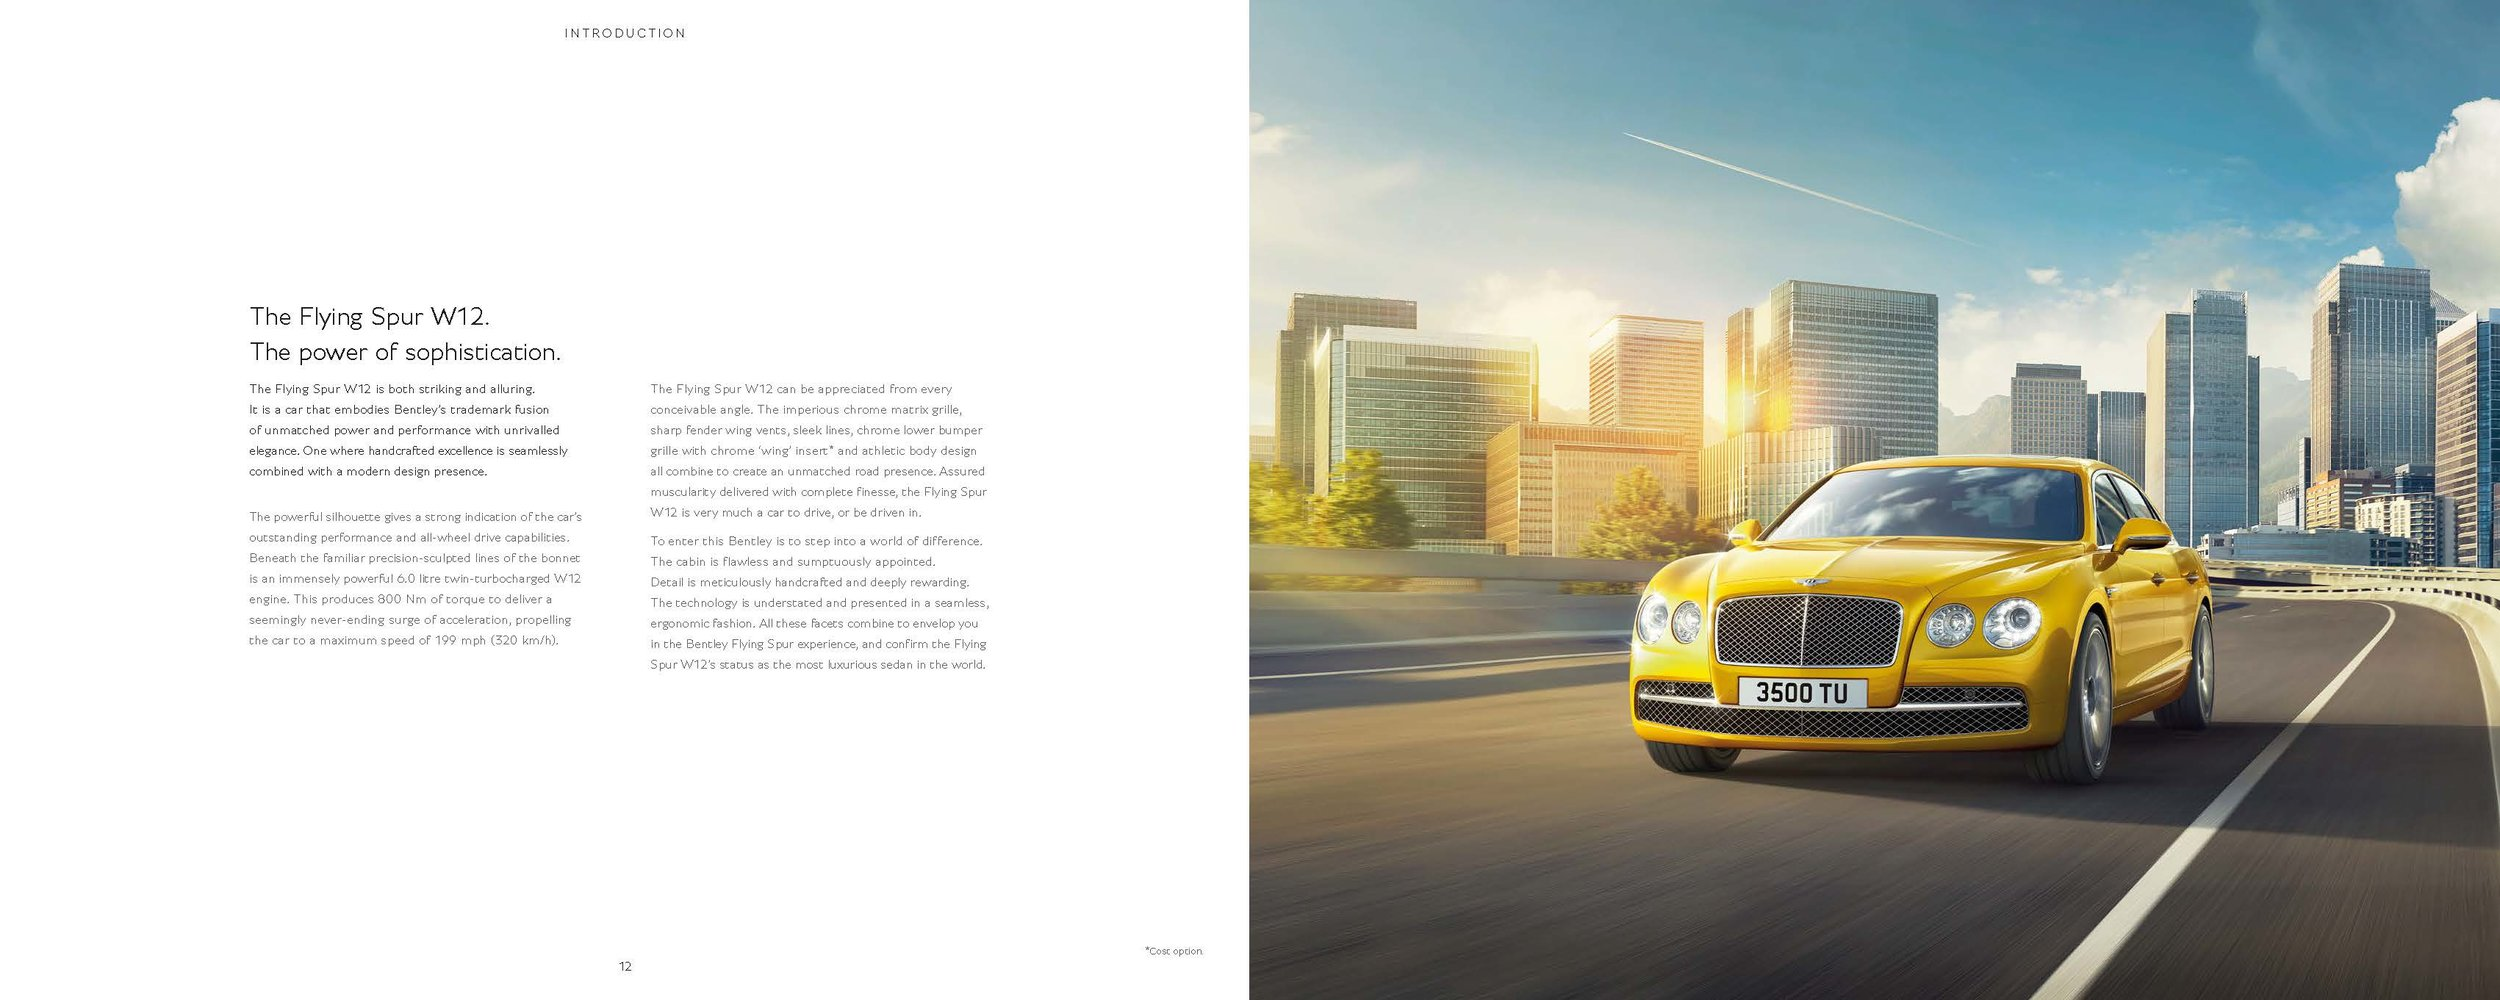 BENFS-16-012_Flying Spur Customer Book Cover & Contents CLEAN_v15_Page_09.jpg